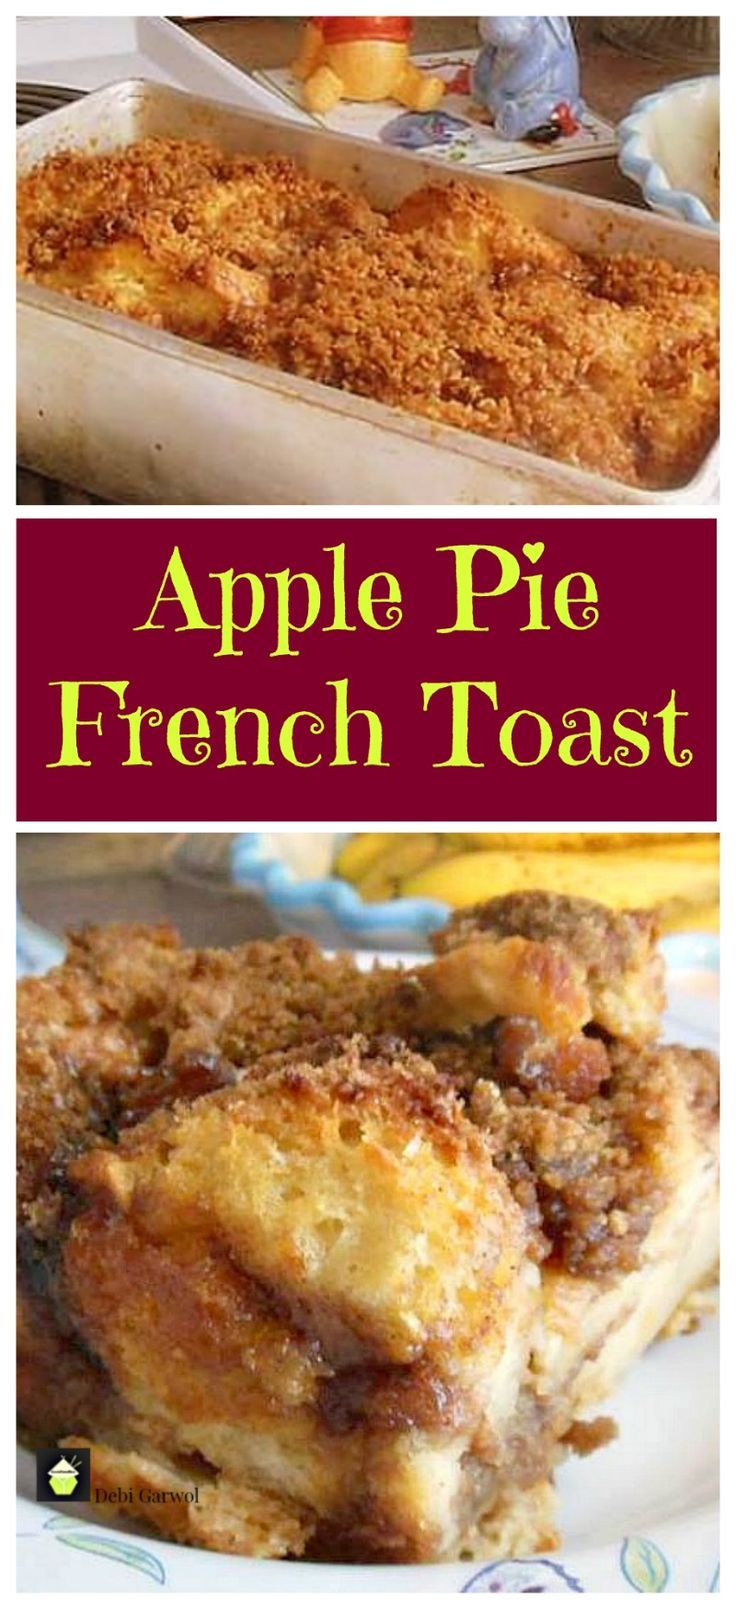 Apple Pie French Toast. A great easy and delicious recipe, serve hot or cold, it's yummy! | Lovefoodies.com